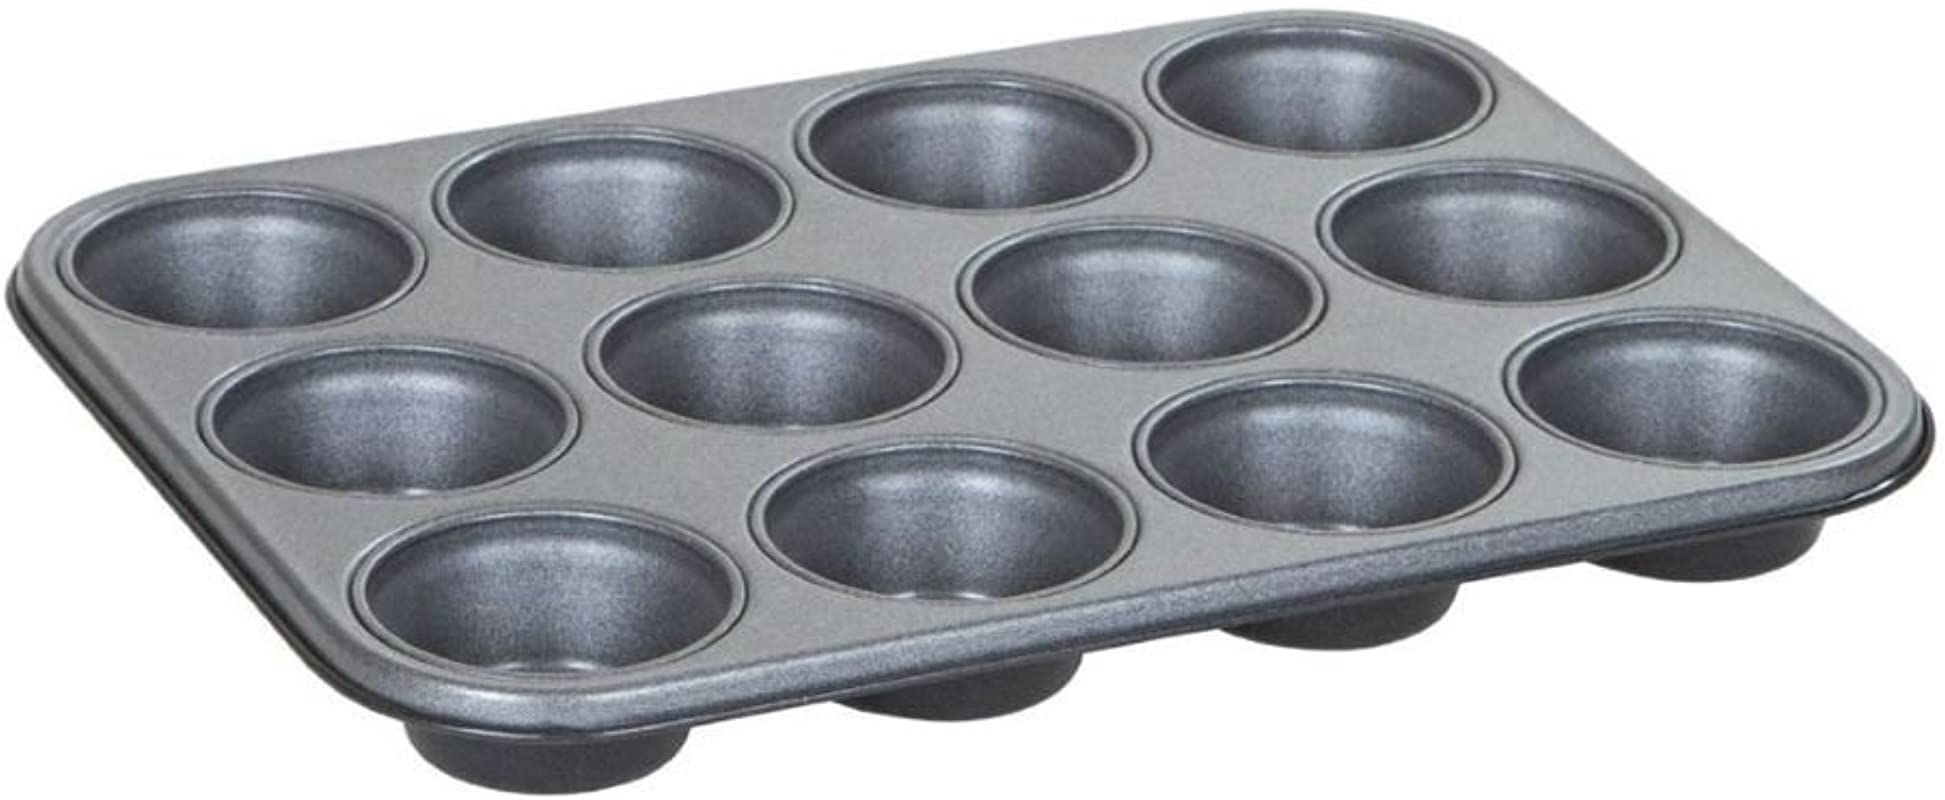 Wham Baker Salt Non Stick 12 Cup Cupcake Muffin Yorkshire Pudding Tin Tray Made In UK